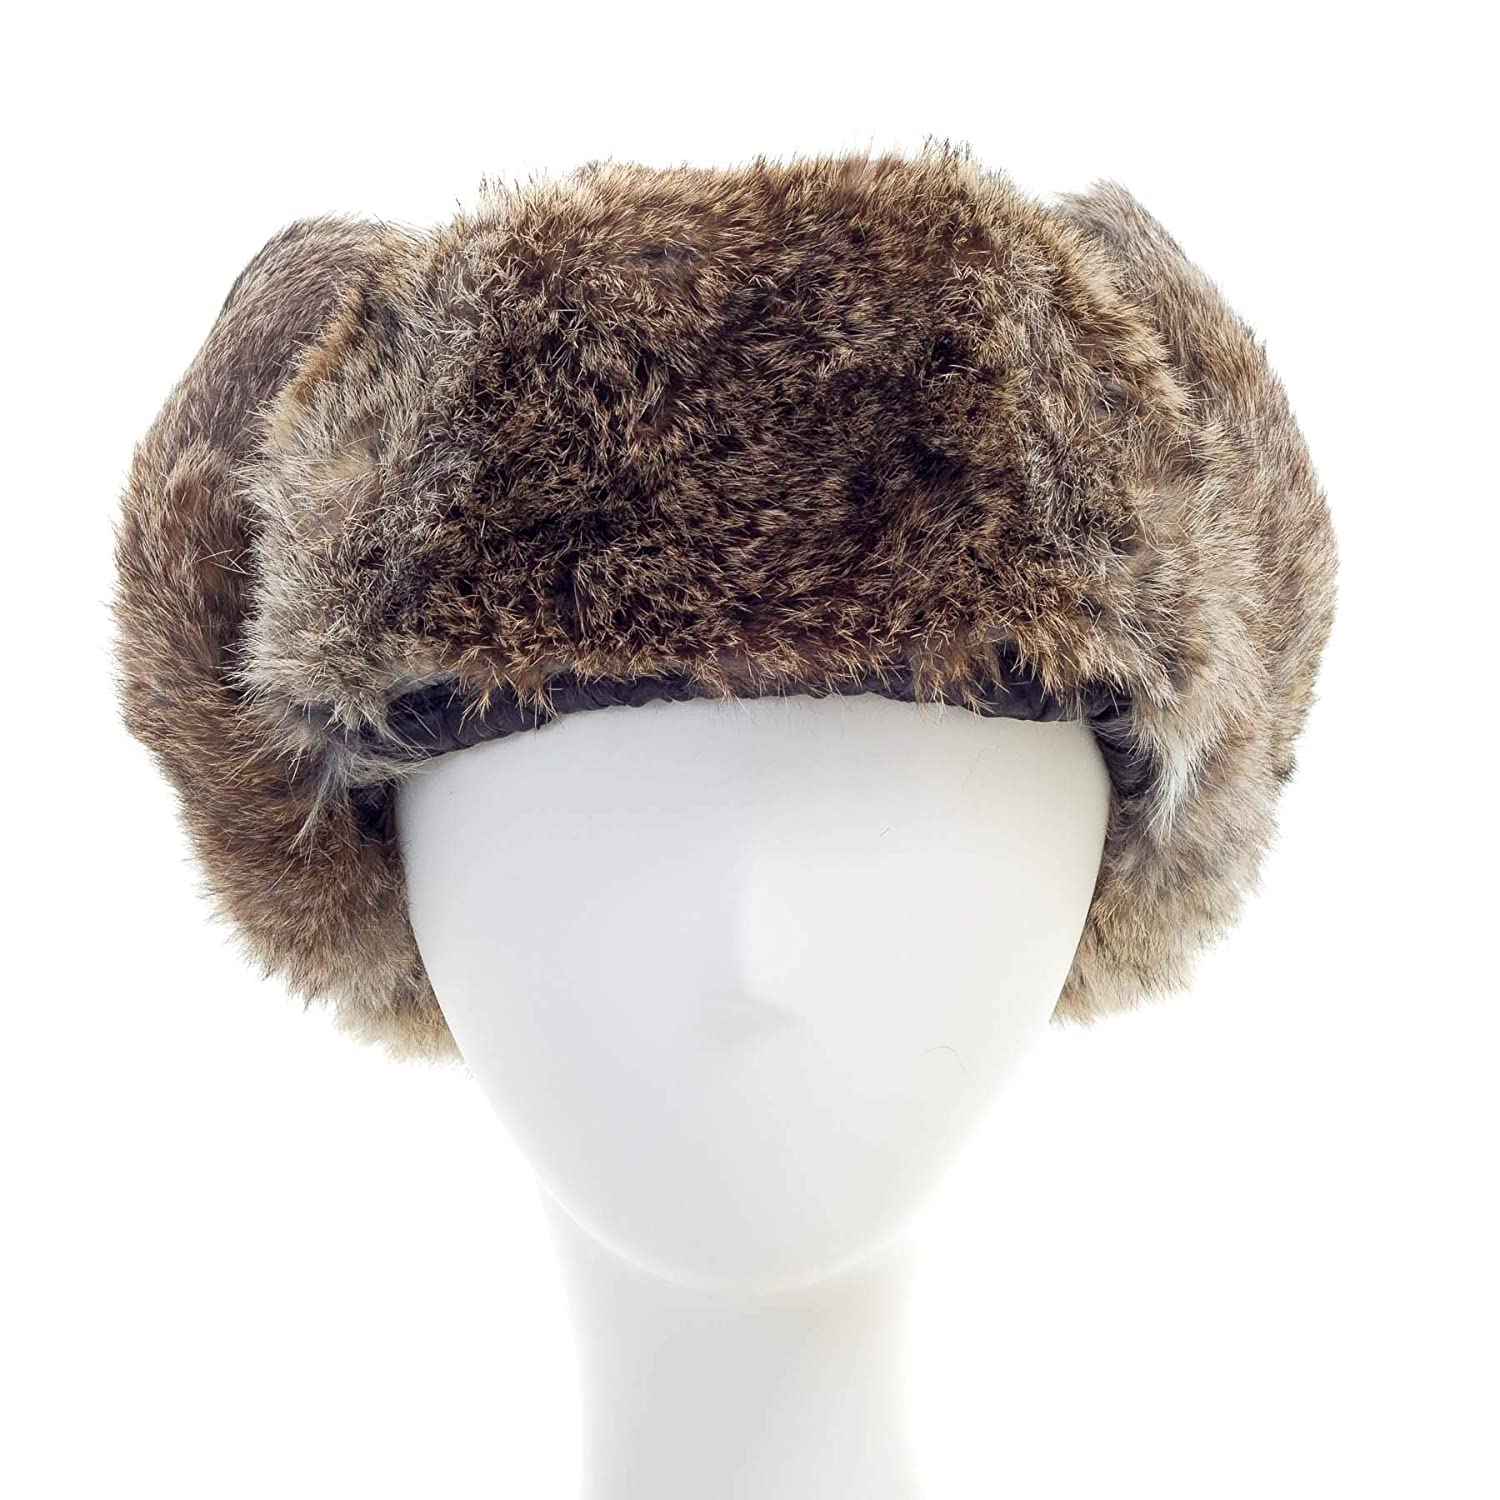 surell Rabbit Fur Ushanka Trapper Hat - Fluffy Warm Russian Fur Winter Cap  Brown at Amazon Women s Clothing store  1ca32bd3bda